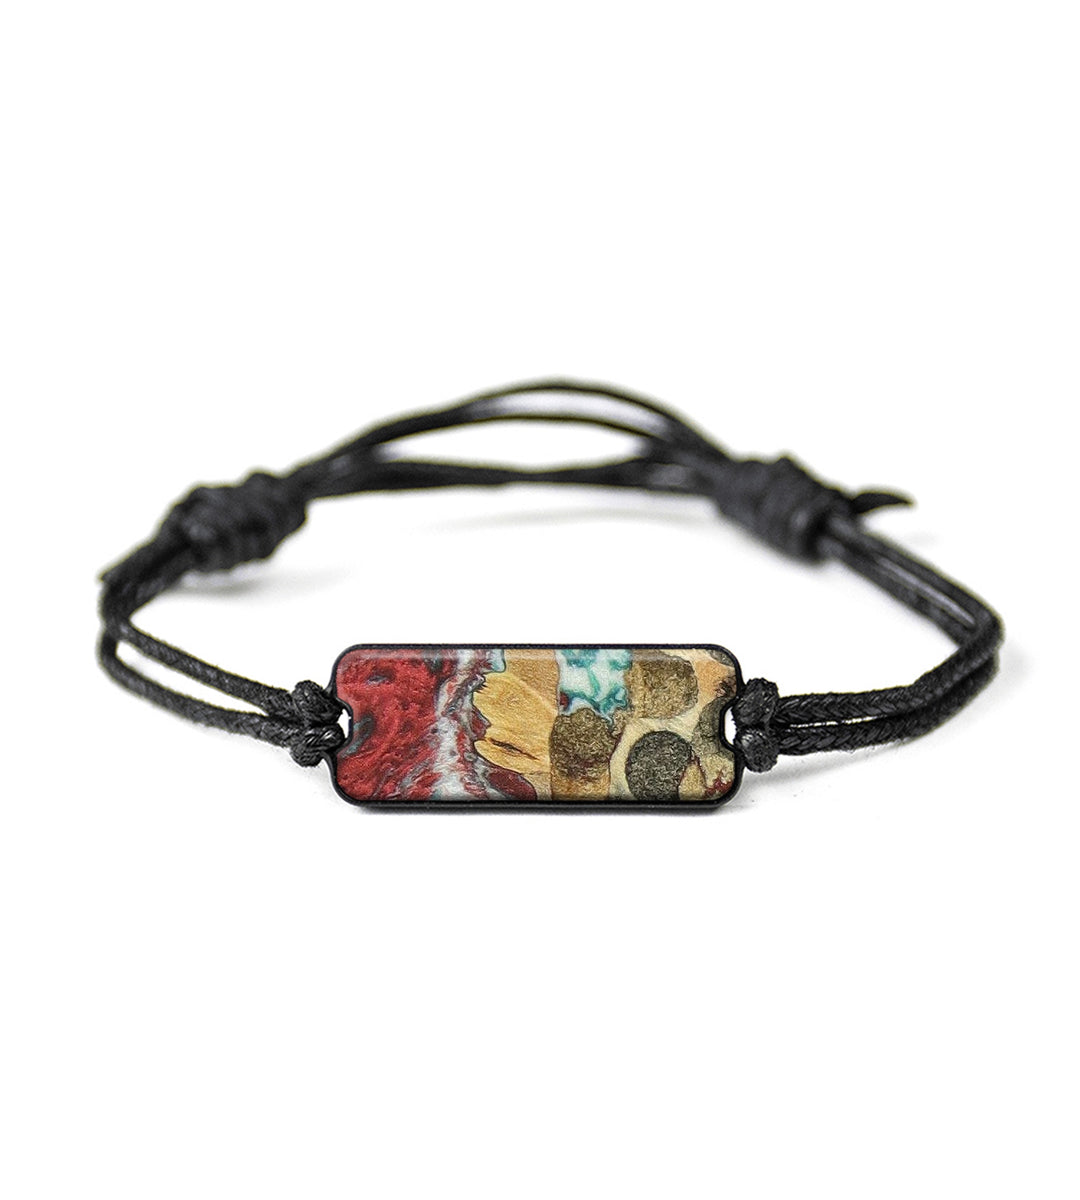 Classic Wood+Resin Bracelet - Wiele (Blue & Red, 358350)